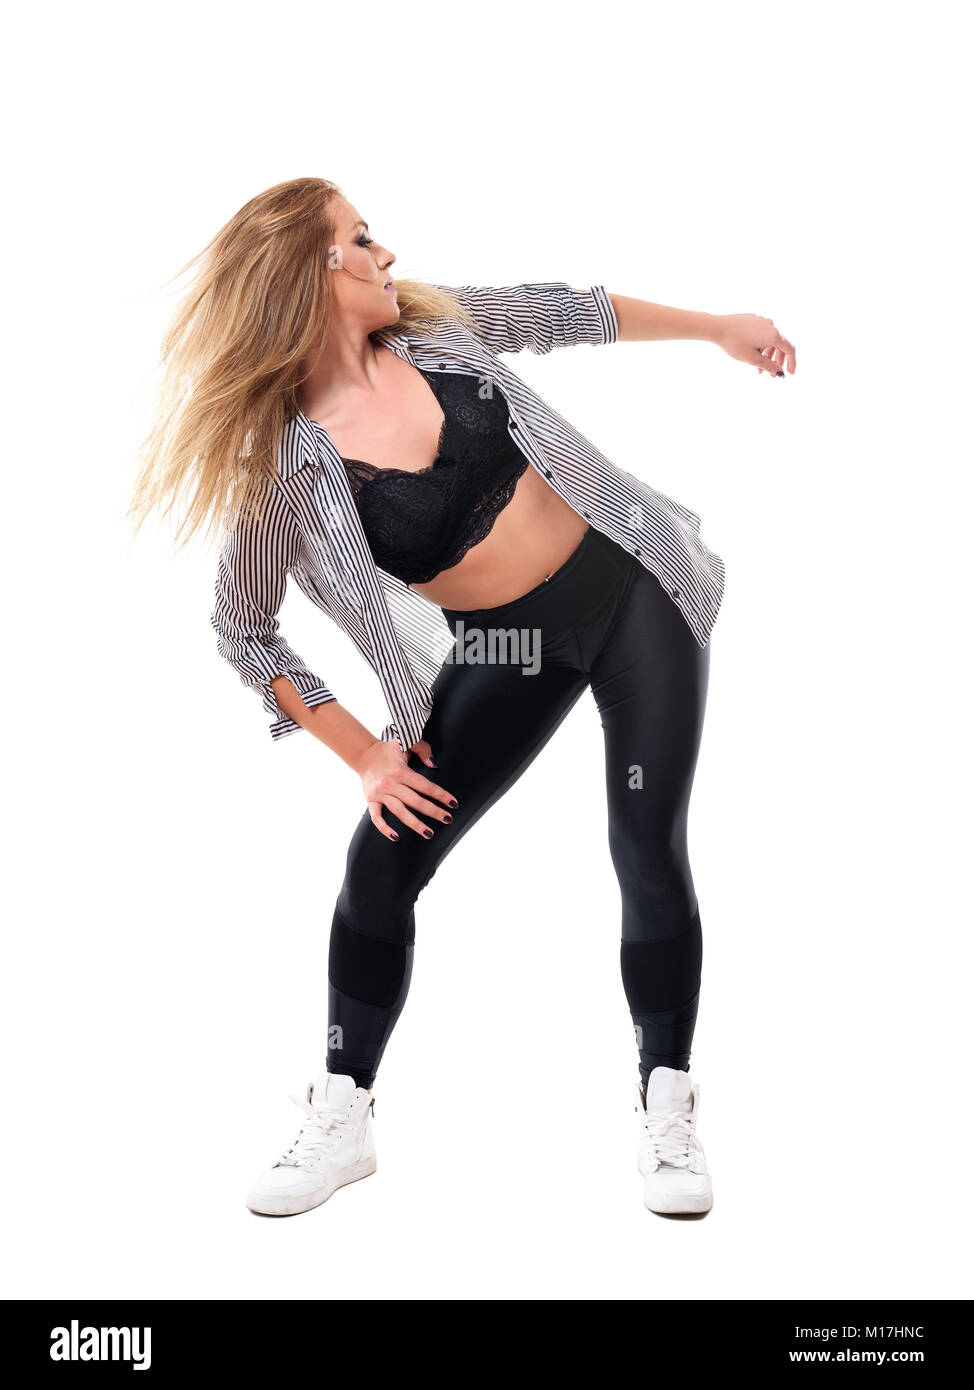 Young energetic woman banding and dancing in choreography with flowing hair toss. Full body length portrait isolated - Stock Image